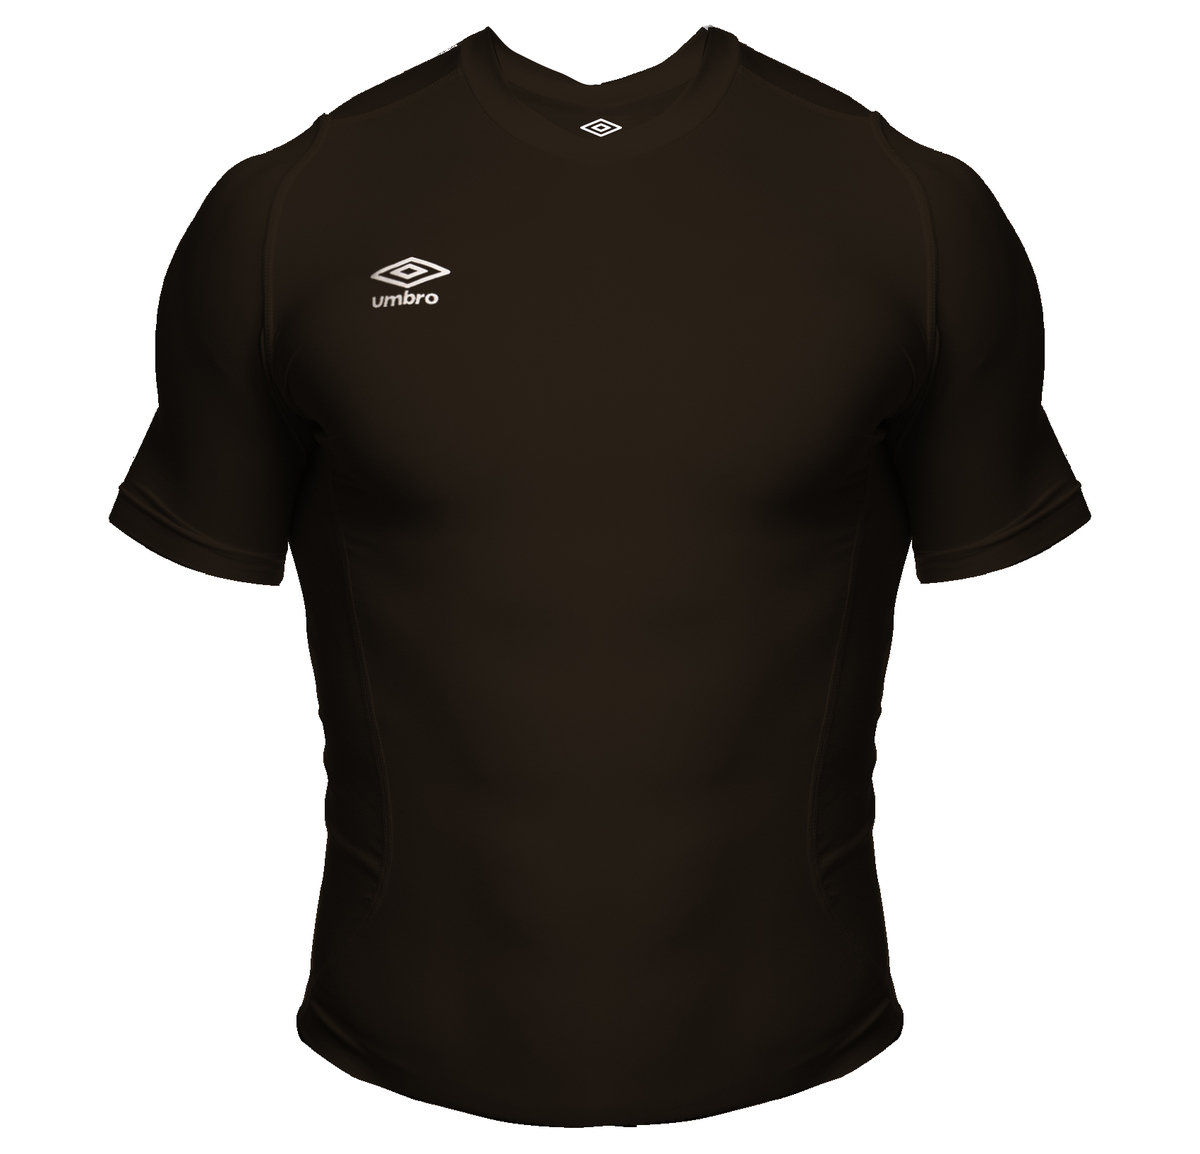 ce6e0db5148 View the CORE CREW BASELAYER SS from the Trainingwear collection